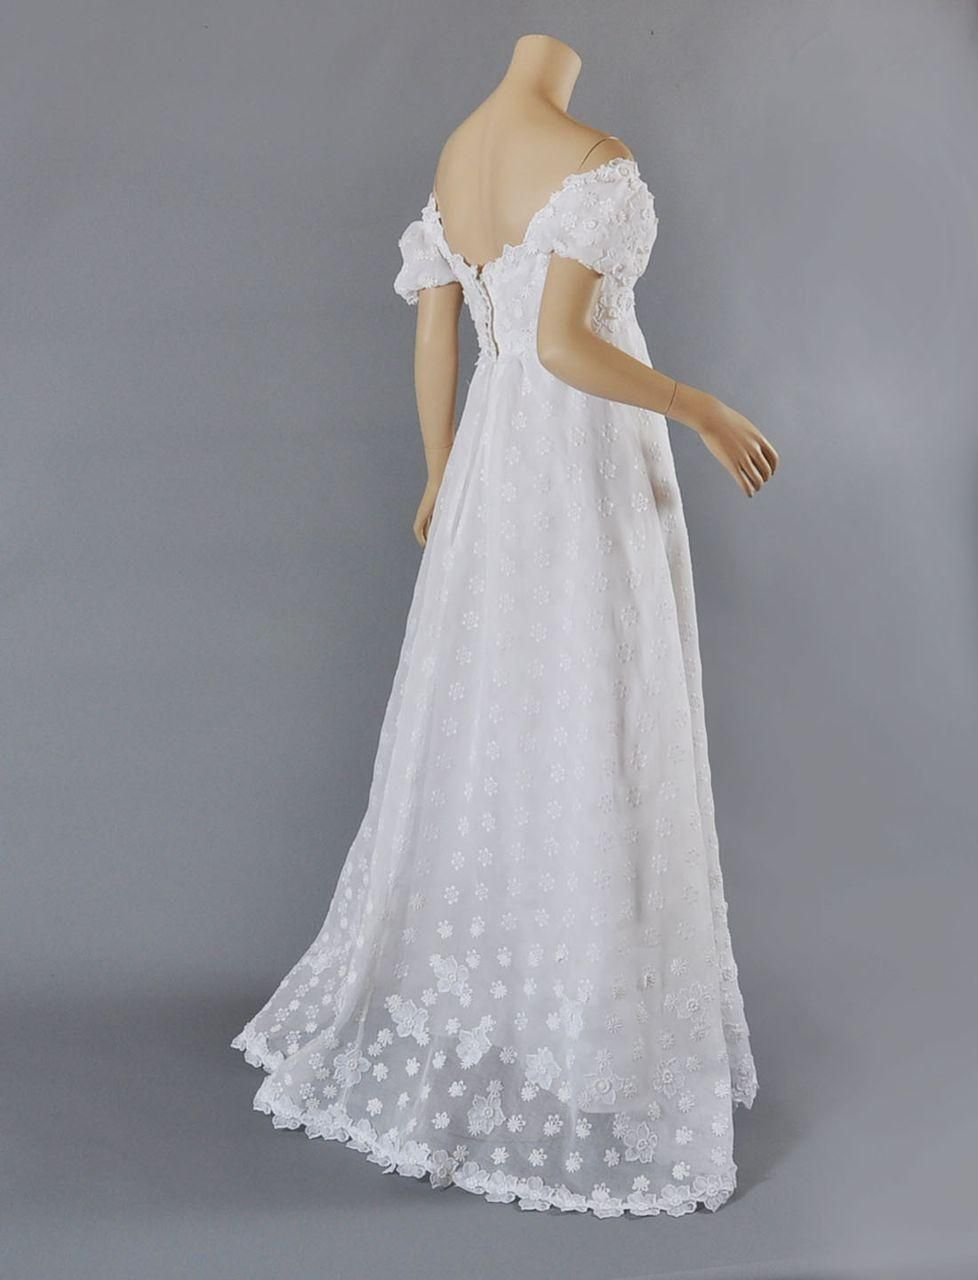 Vntg Priscilla of Boston 1960's Wedding Gown w / Veil SM